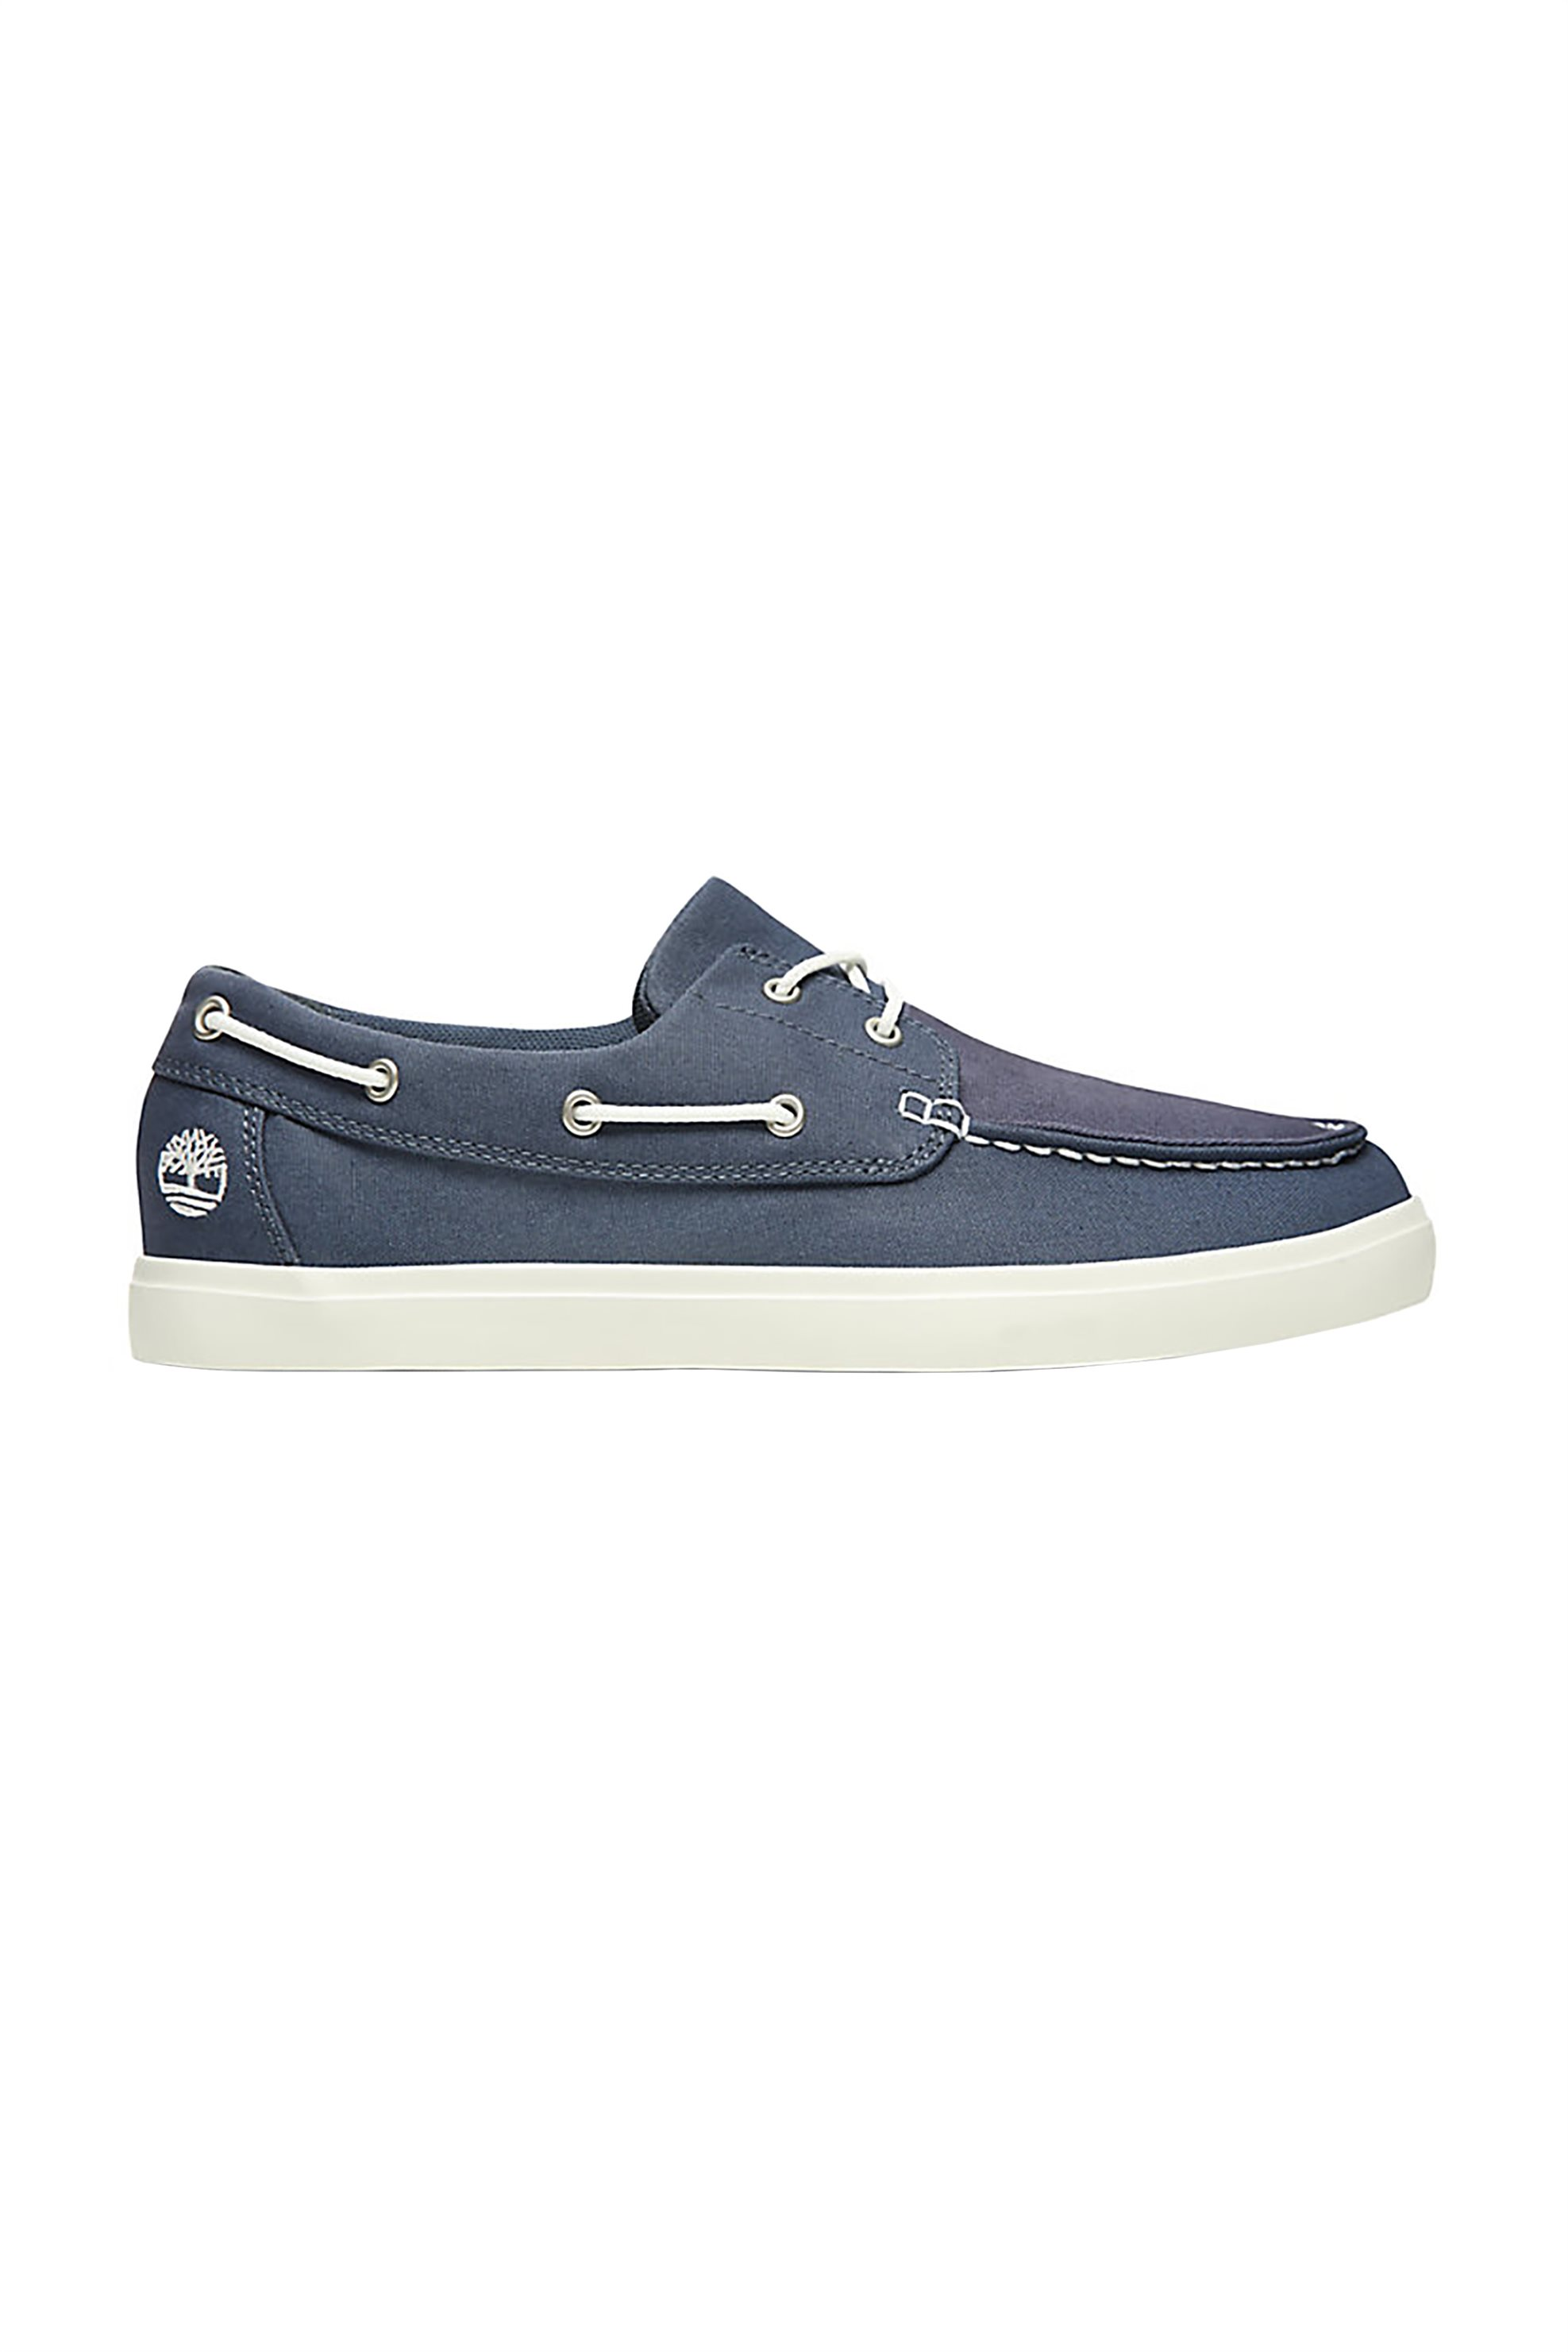 e116c7c6def Notos Timberland ανδρικά boat shoes Union Wharf – TB0A1XEU4321 – Μπλε